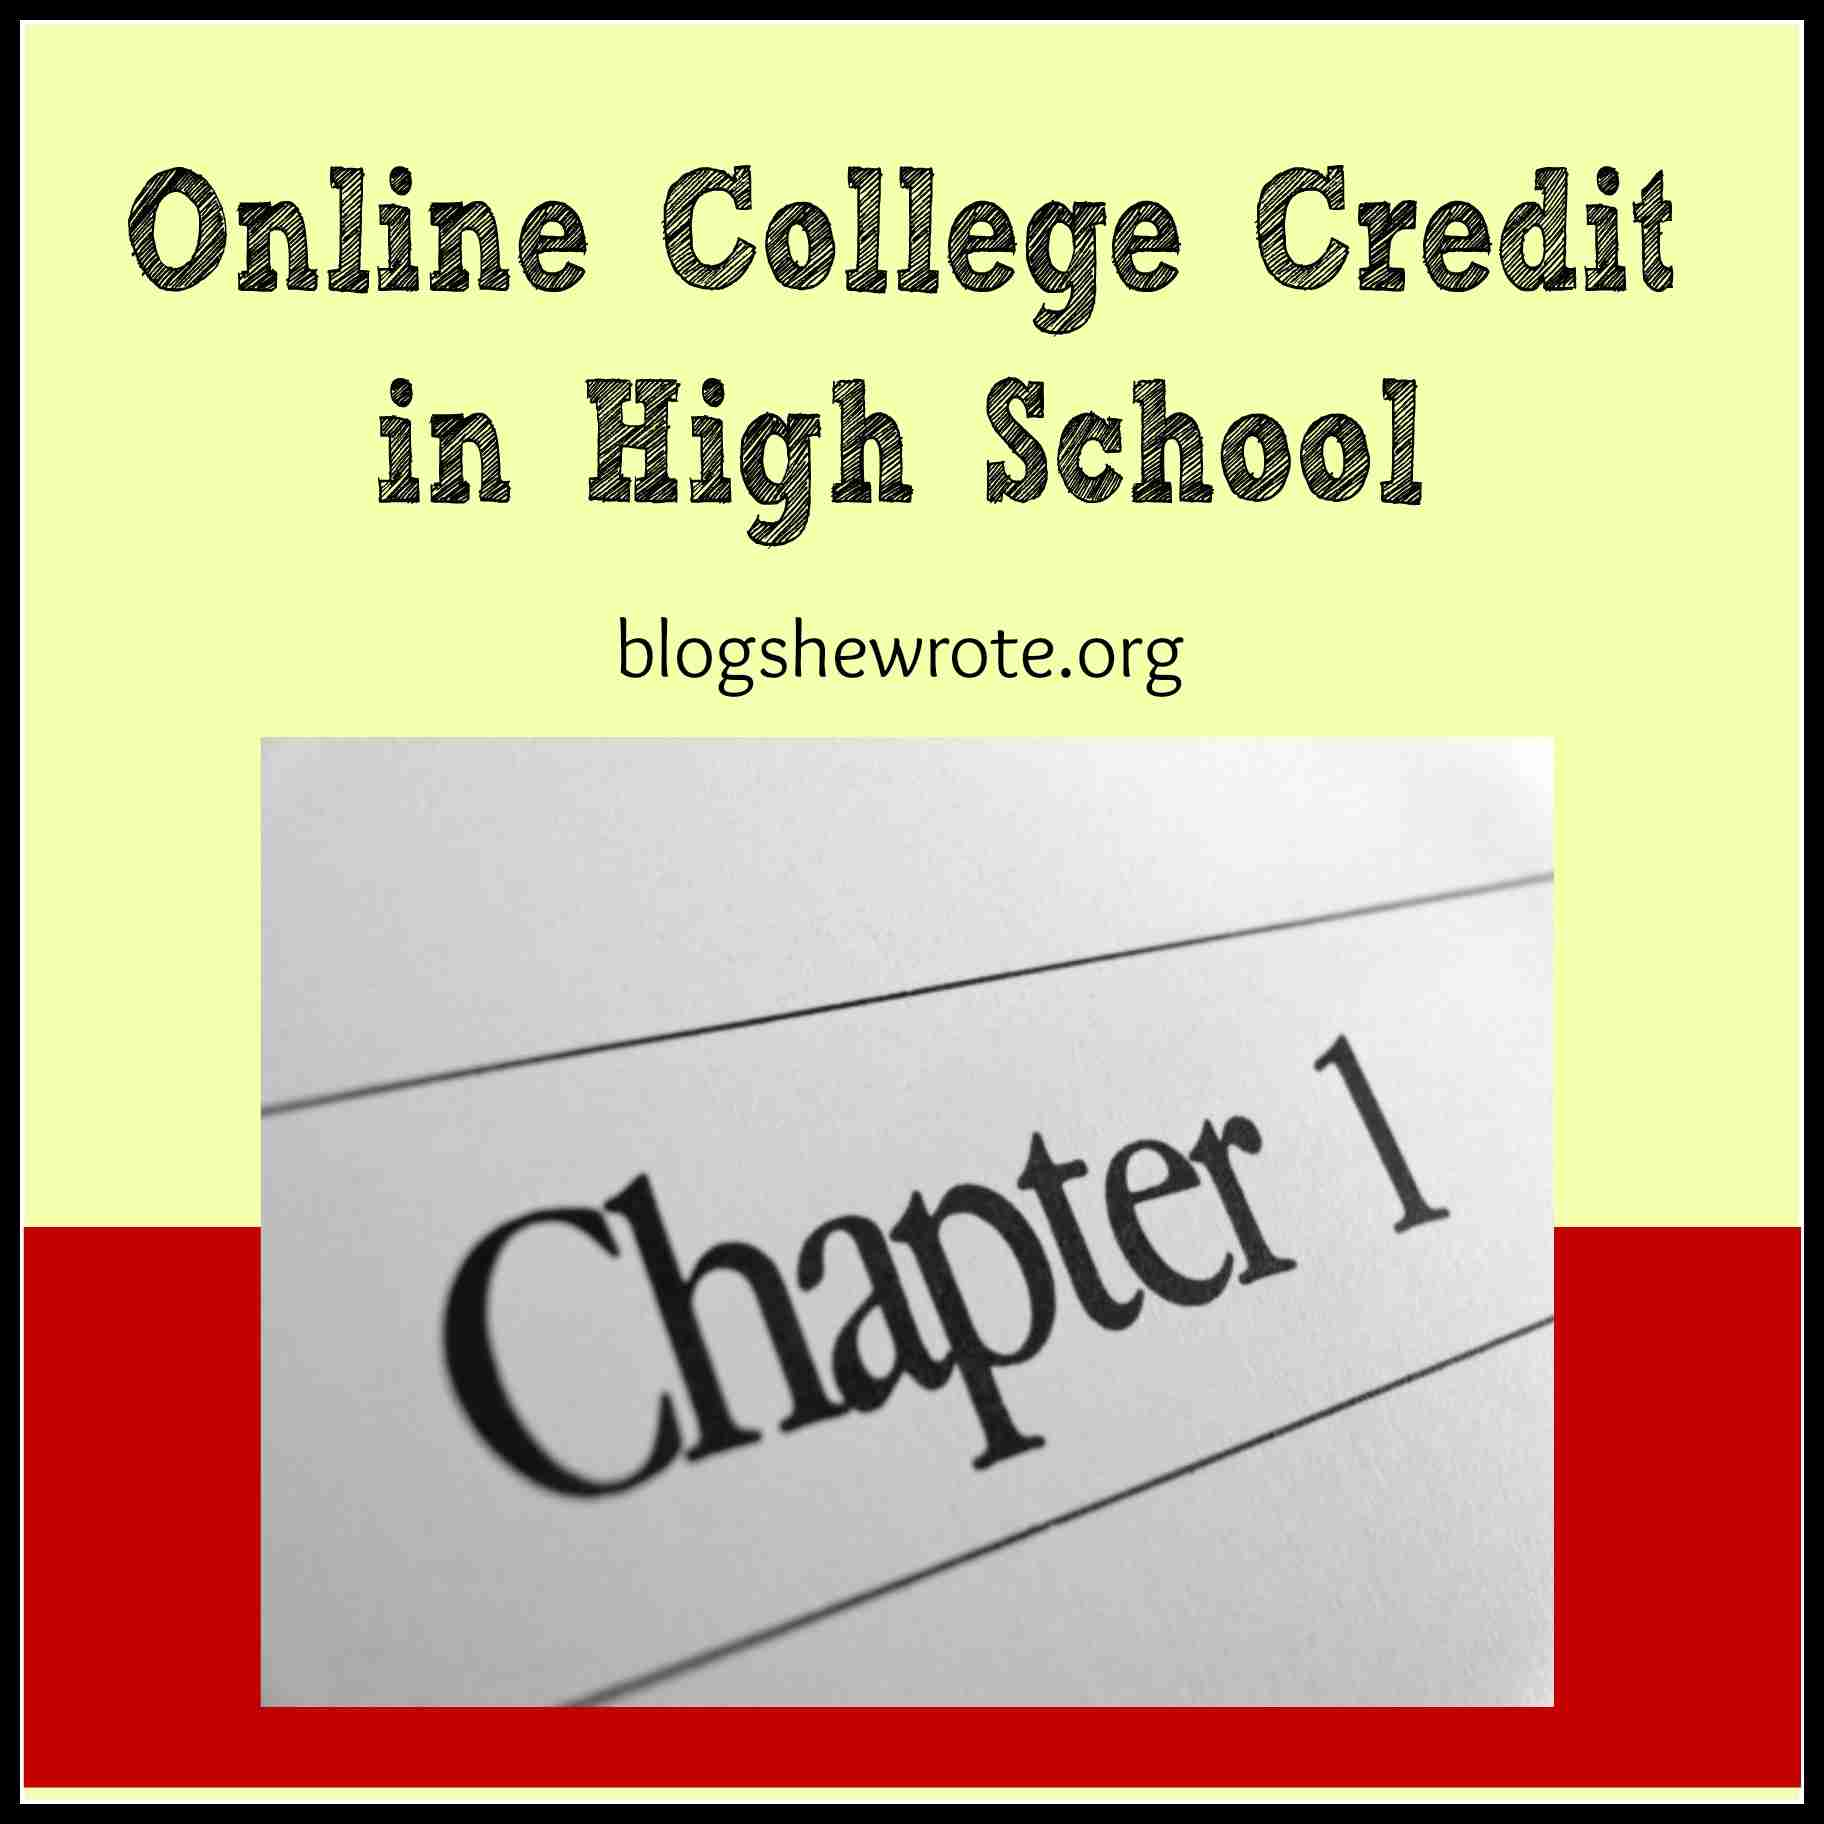 Blog, She Wrote: Online College Credit in High School